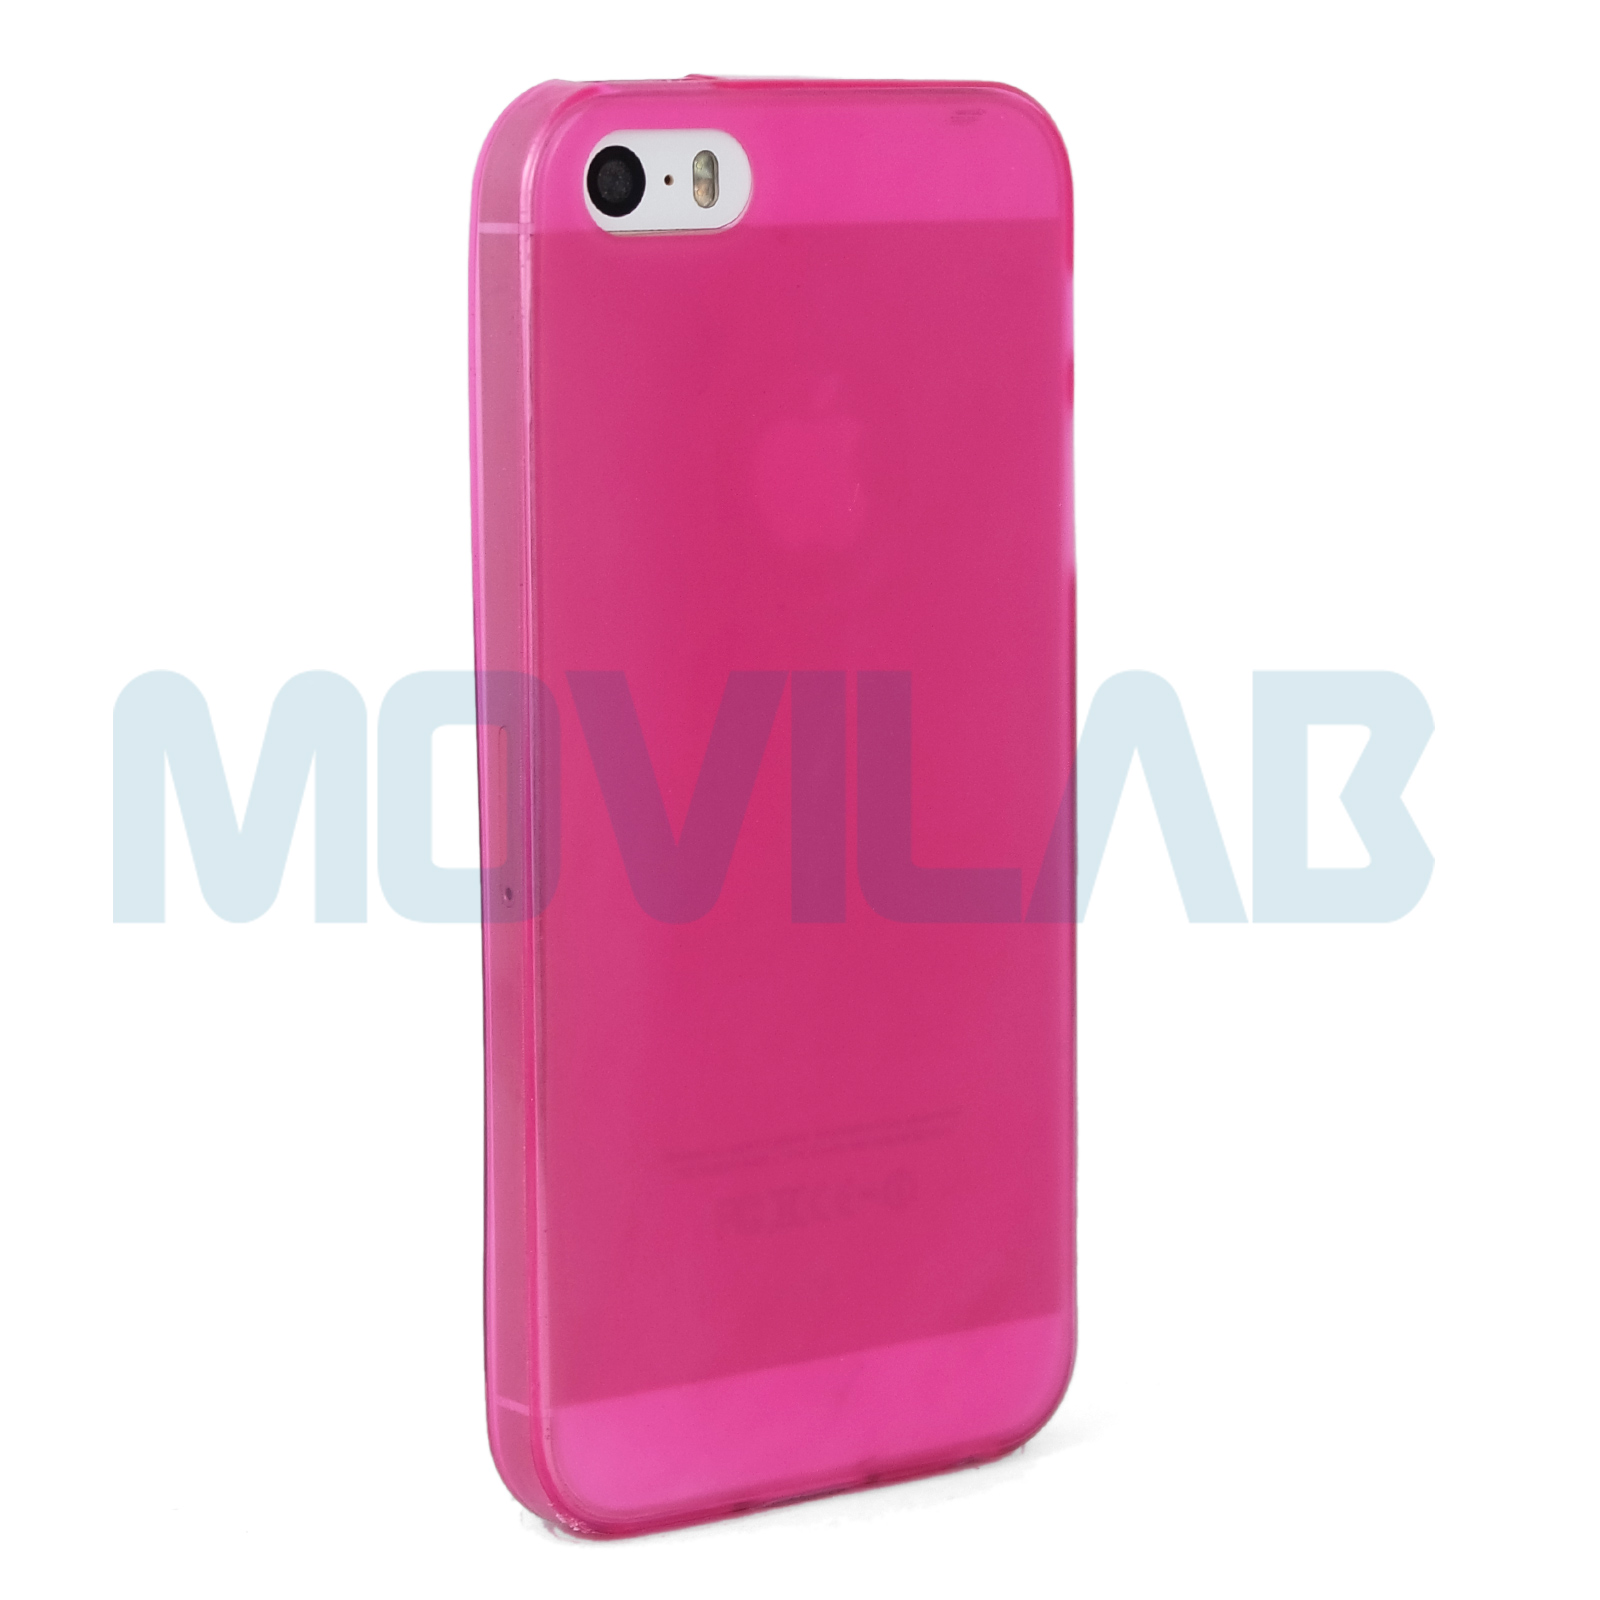 Funda Iphone 5 rosa lateral